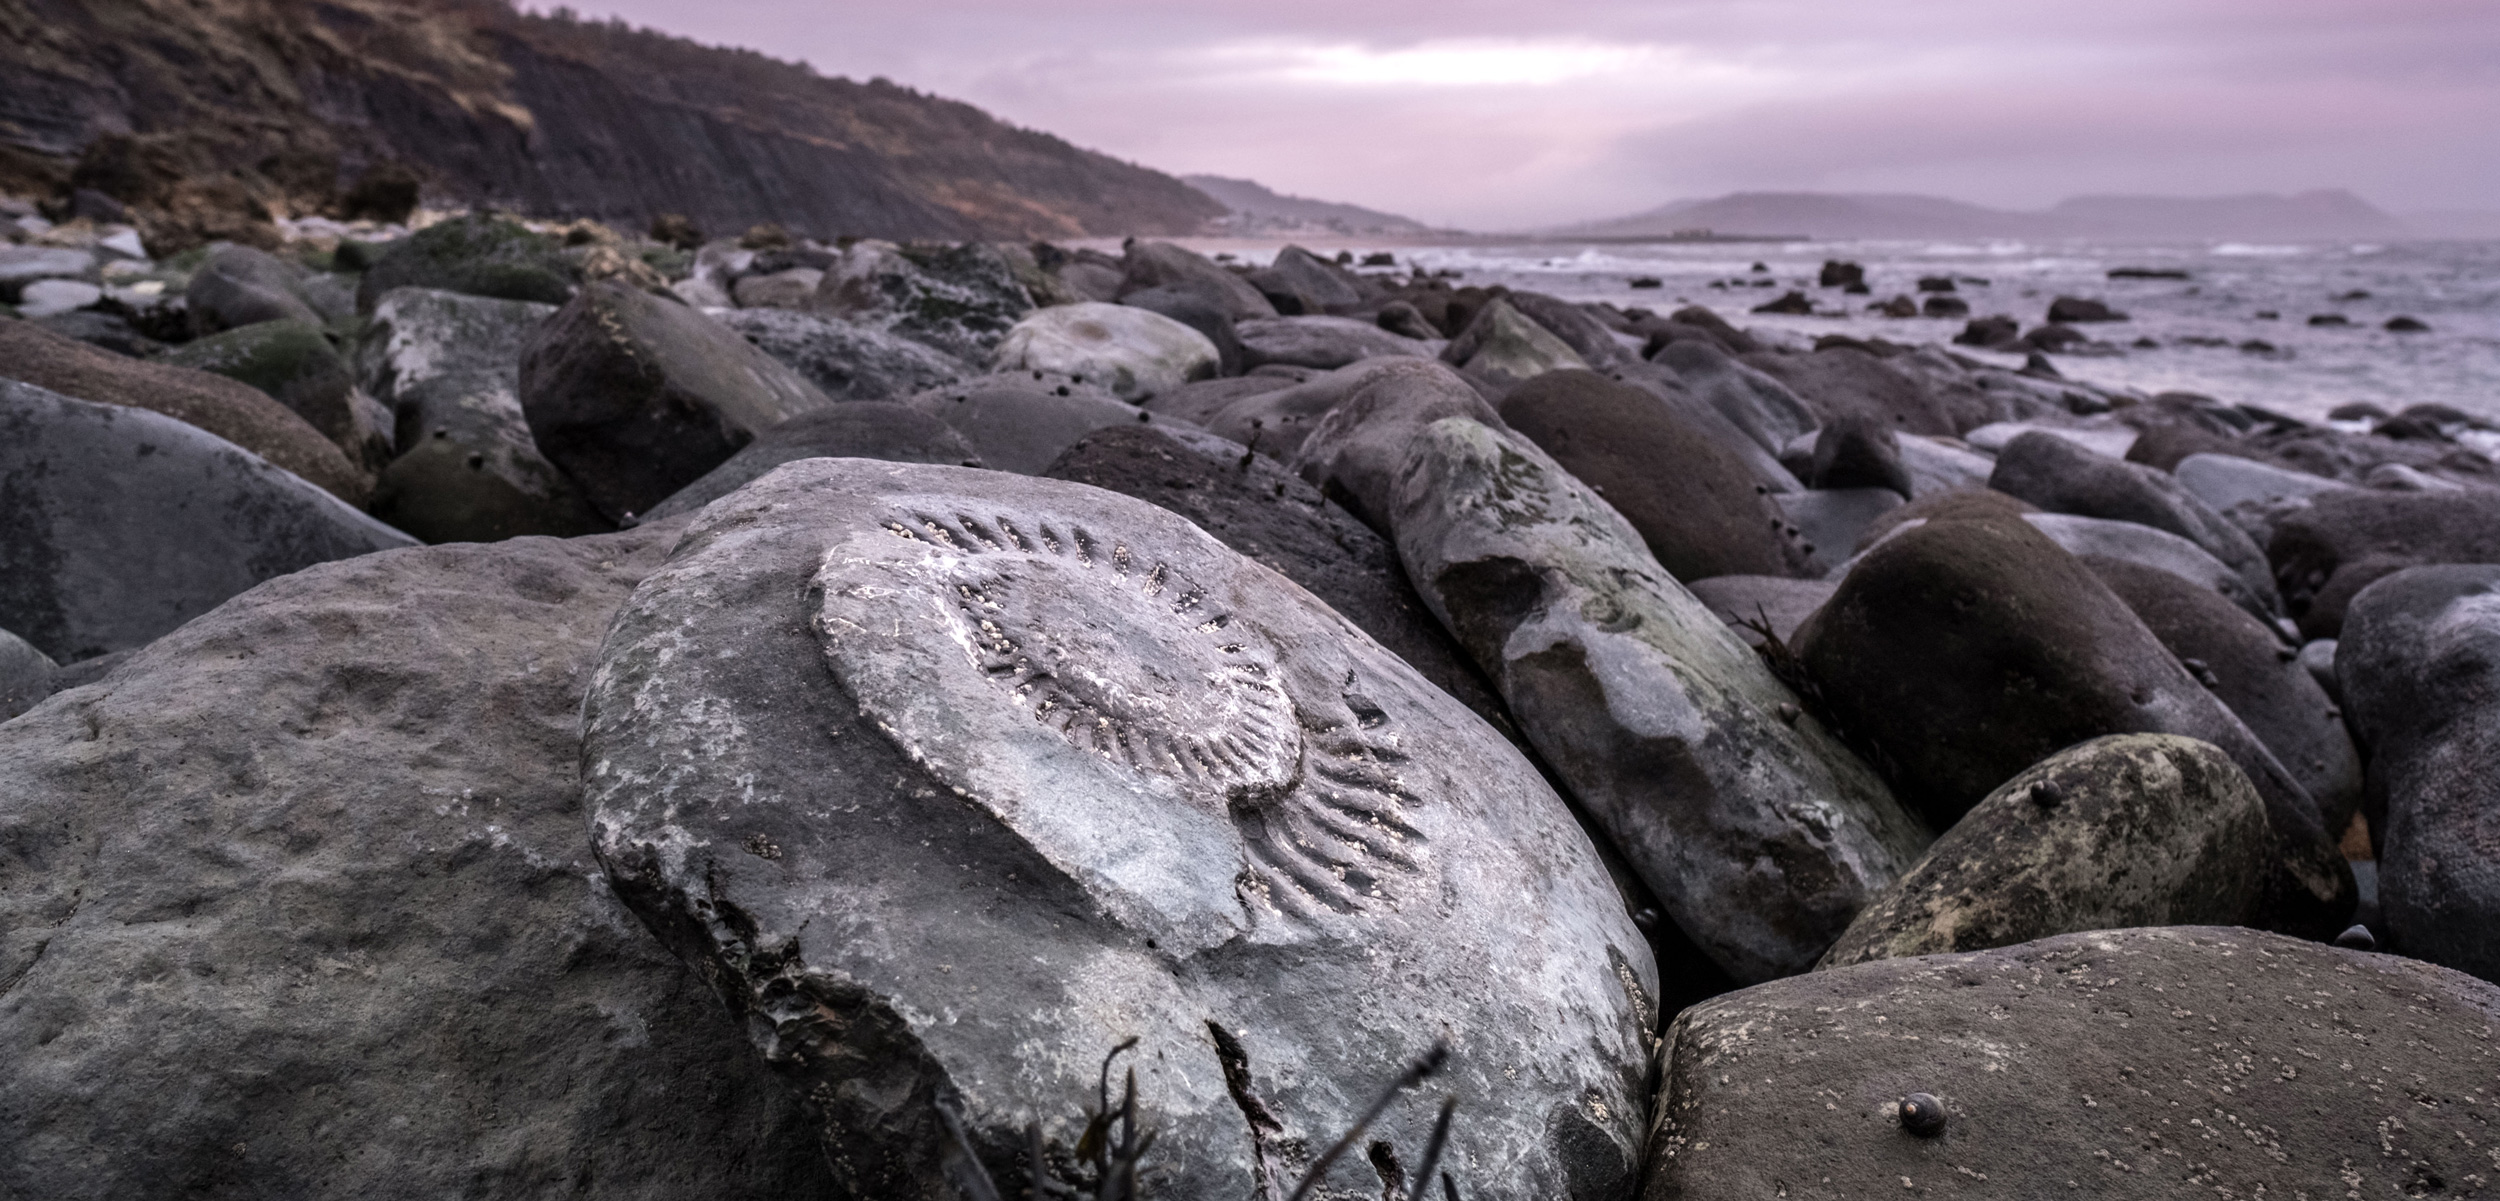 ammonite fossil on beach